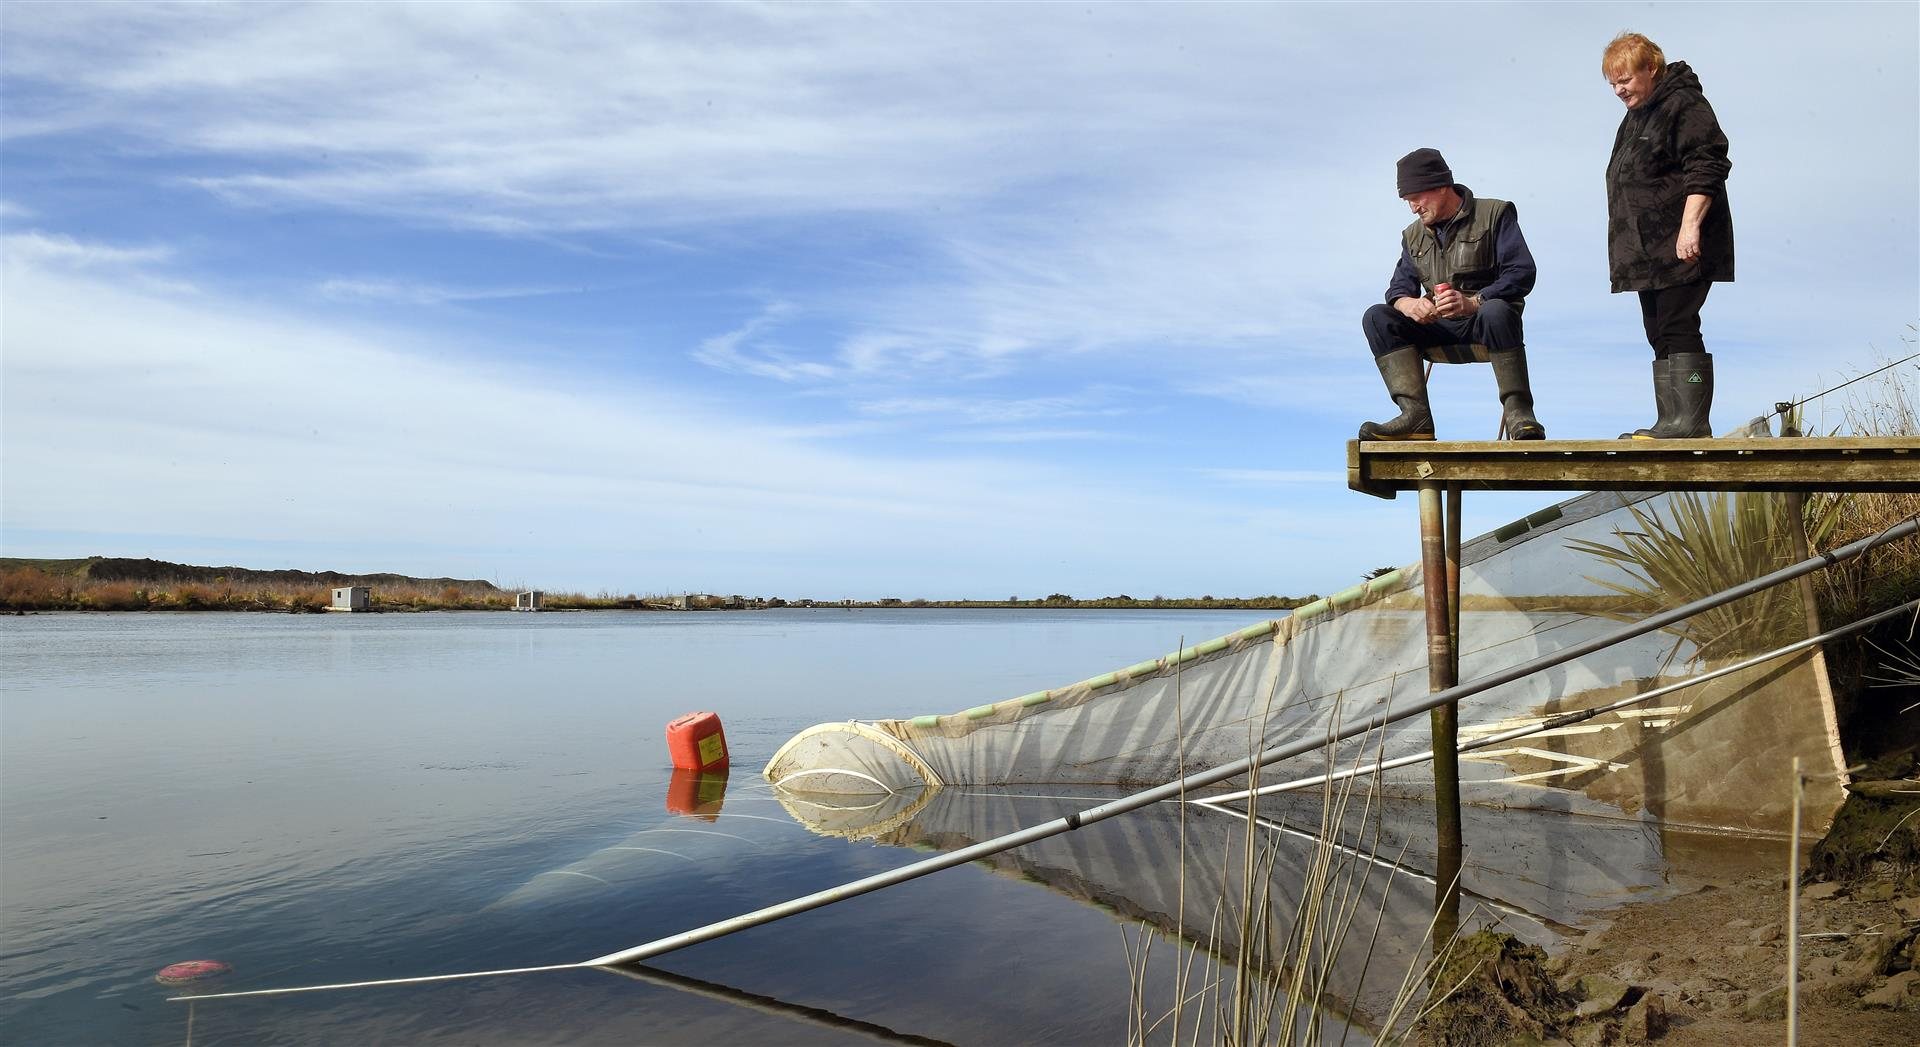 Colin and Christine Melvin at their whitebaiting stand near the Clutha River mouth yesterday. Photo: Stephen Jaquiery